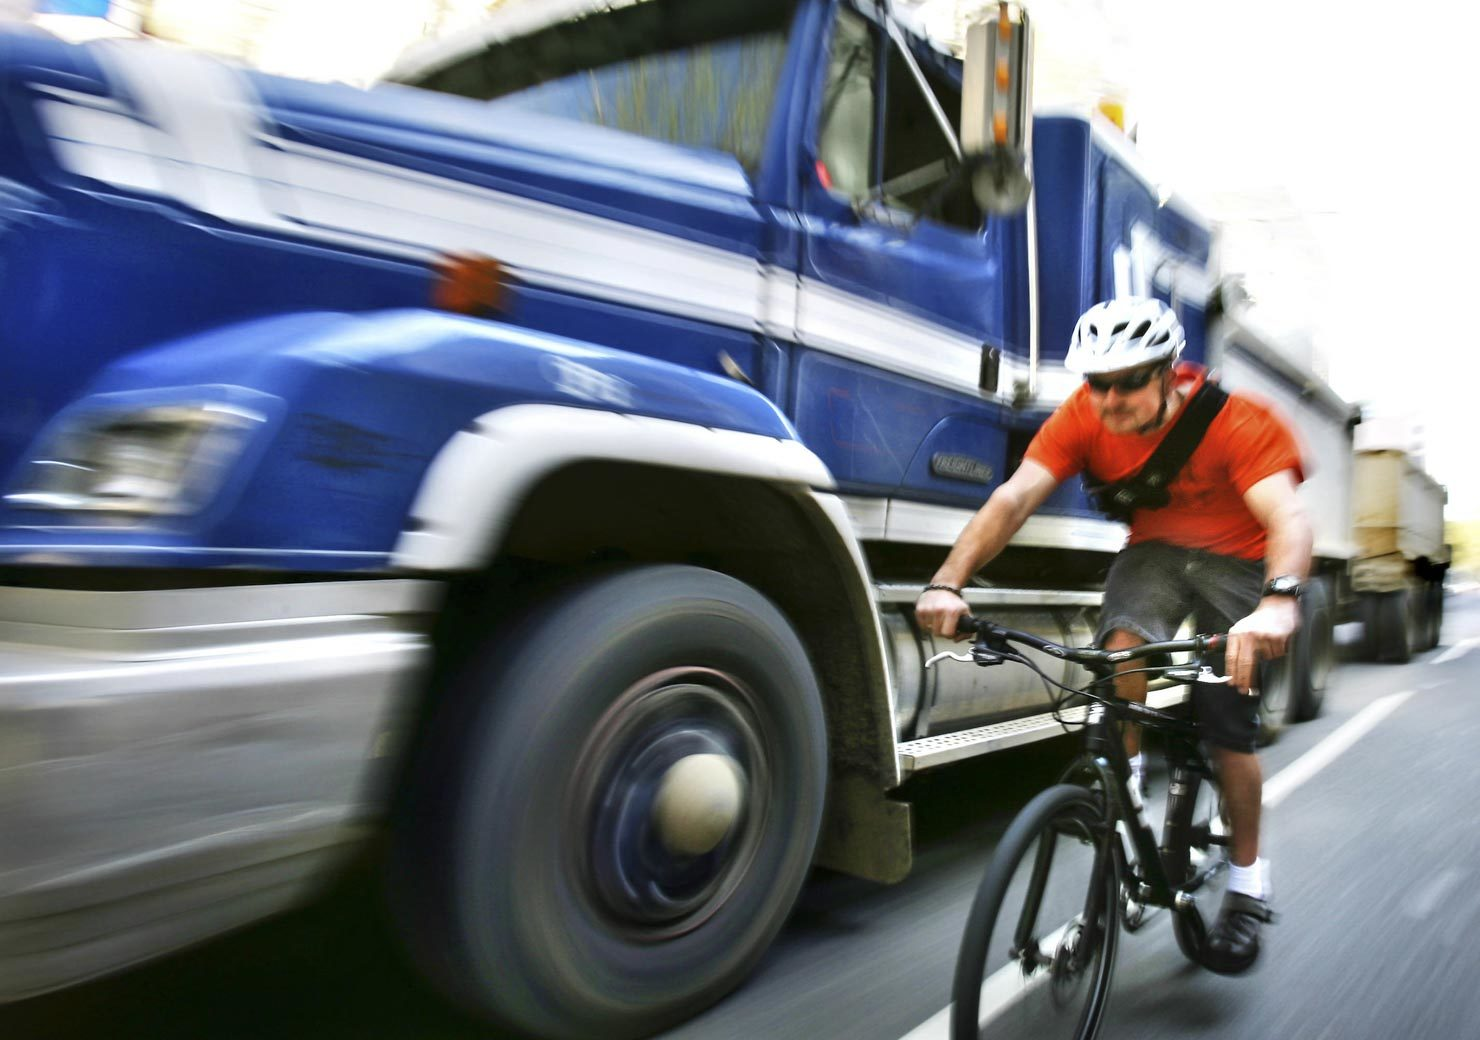 Cyclist being overtaken dangerously be a truck